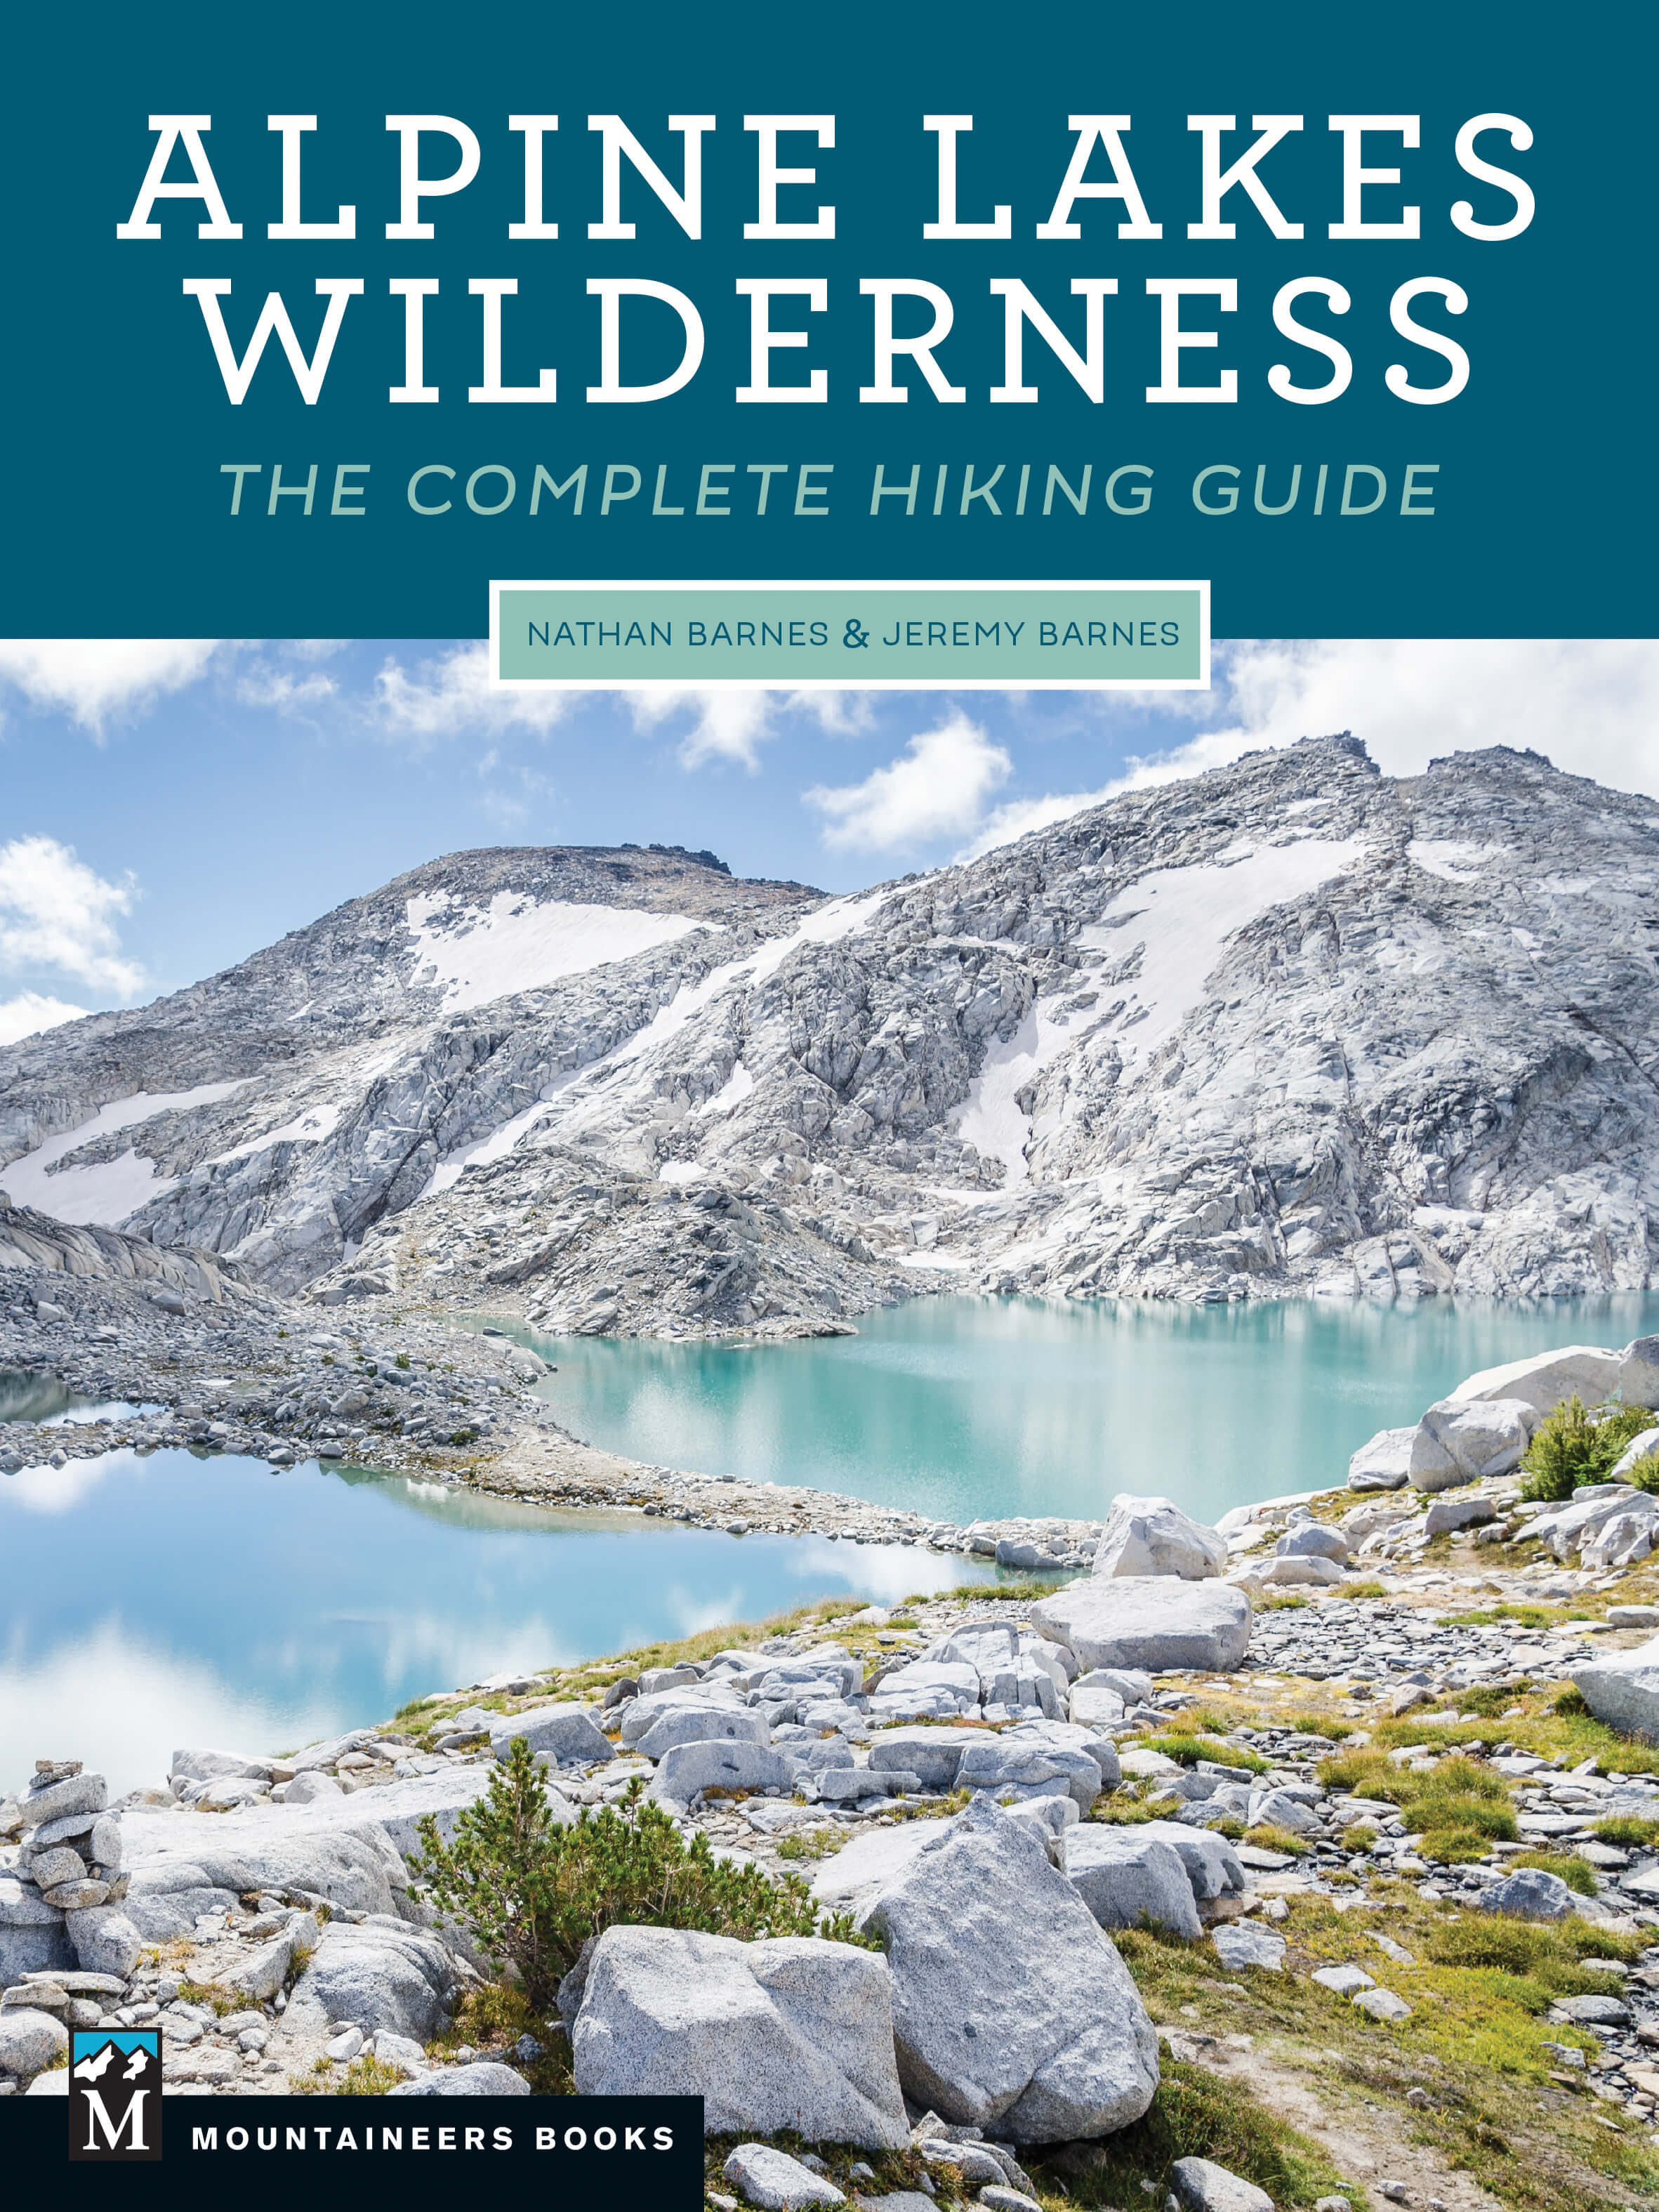 Cover of Alpine Lakes Wilderness: The Complete Hiking Guide showing an icy blue alpine lake surrounded by rocky alpine terrain